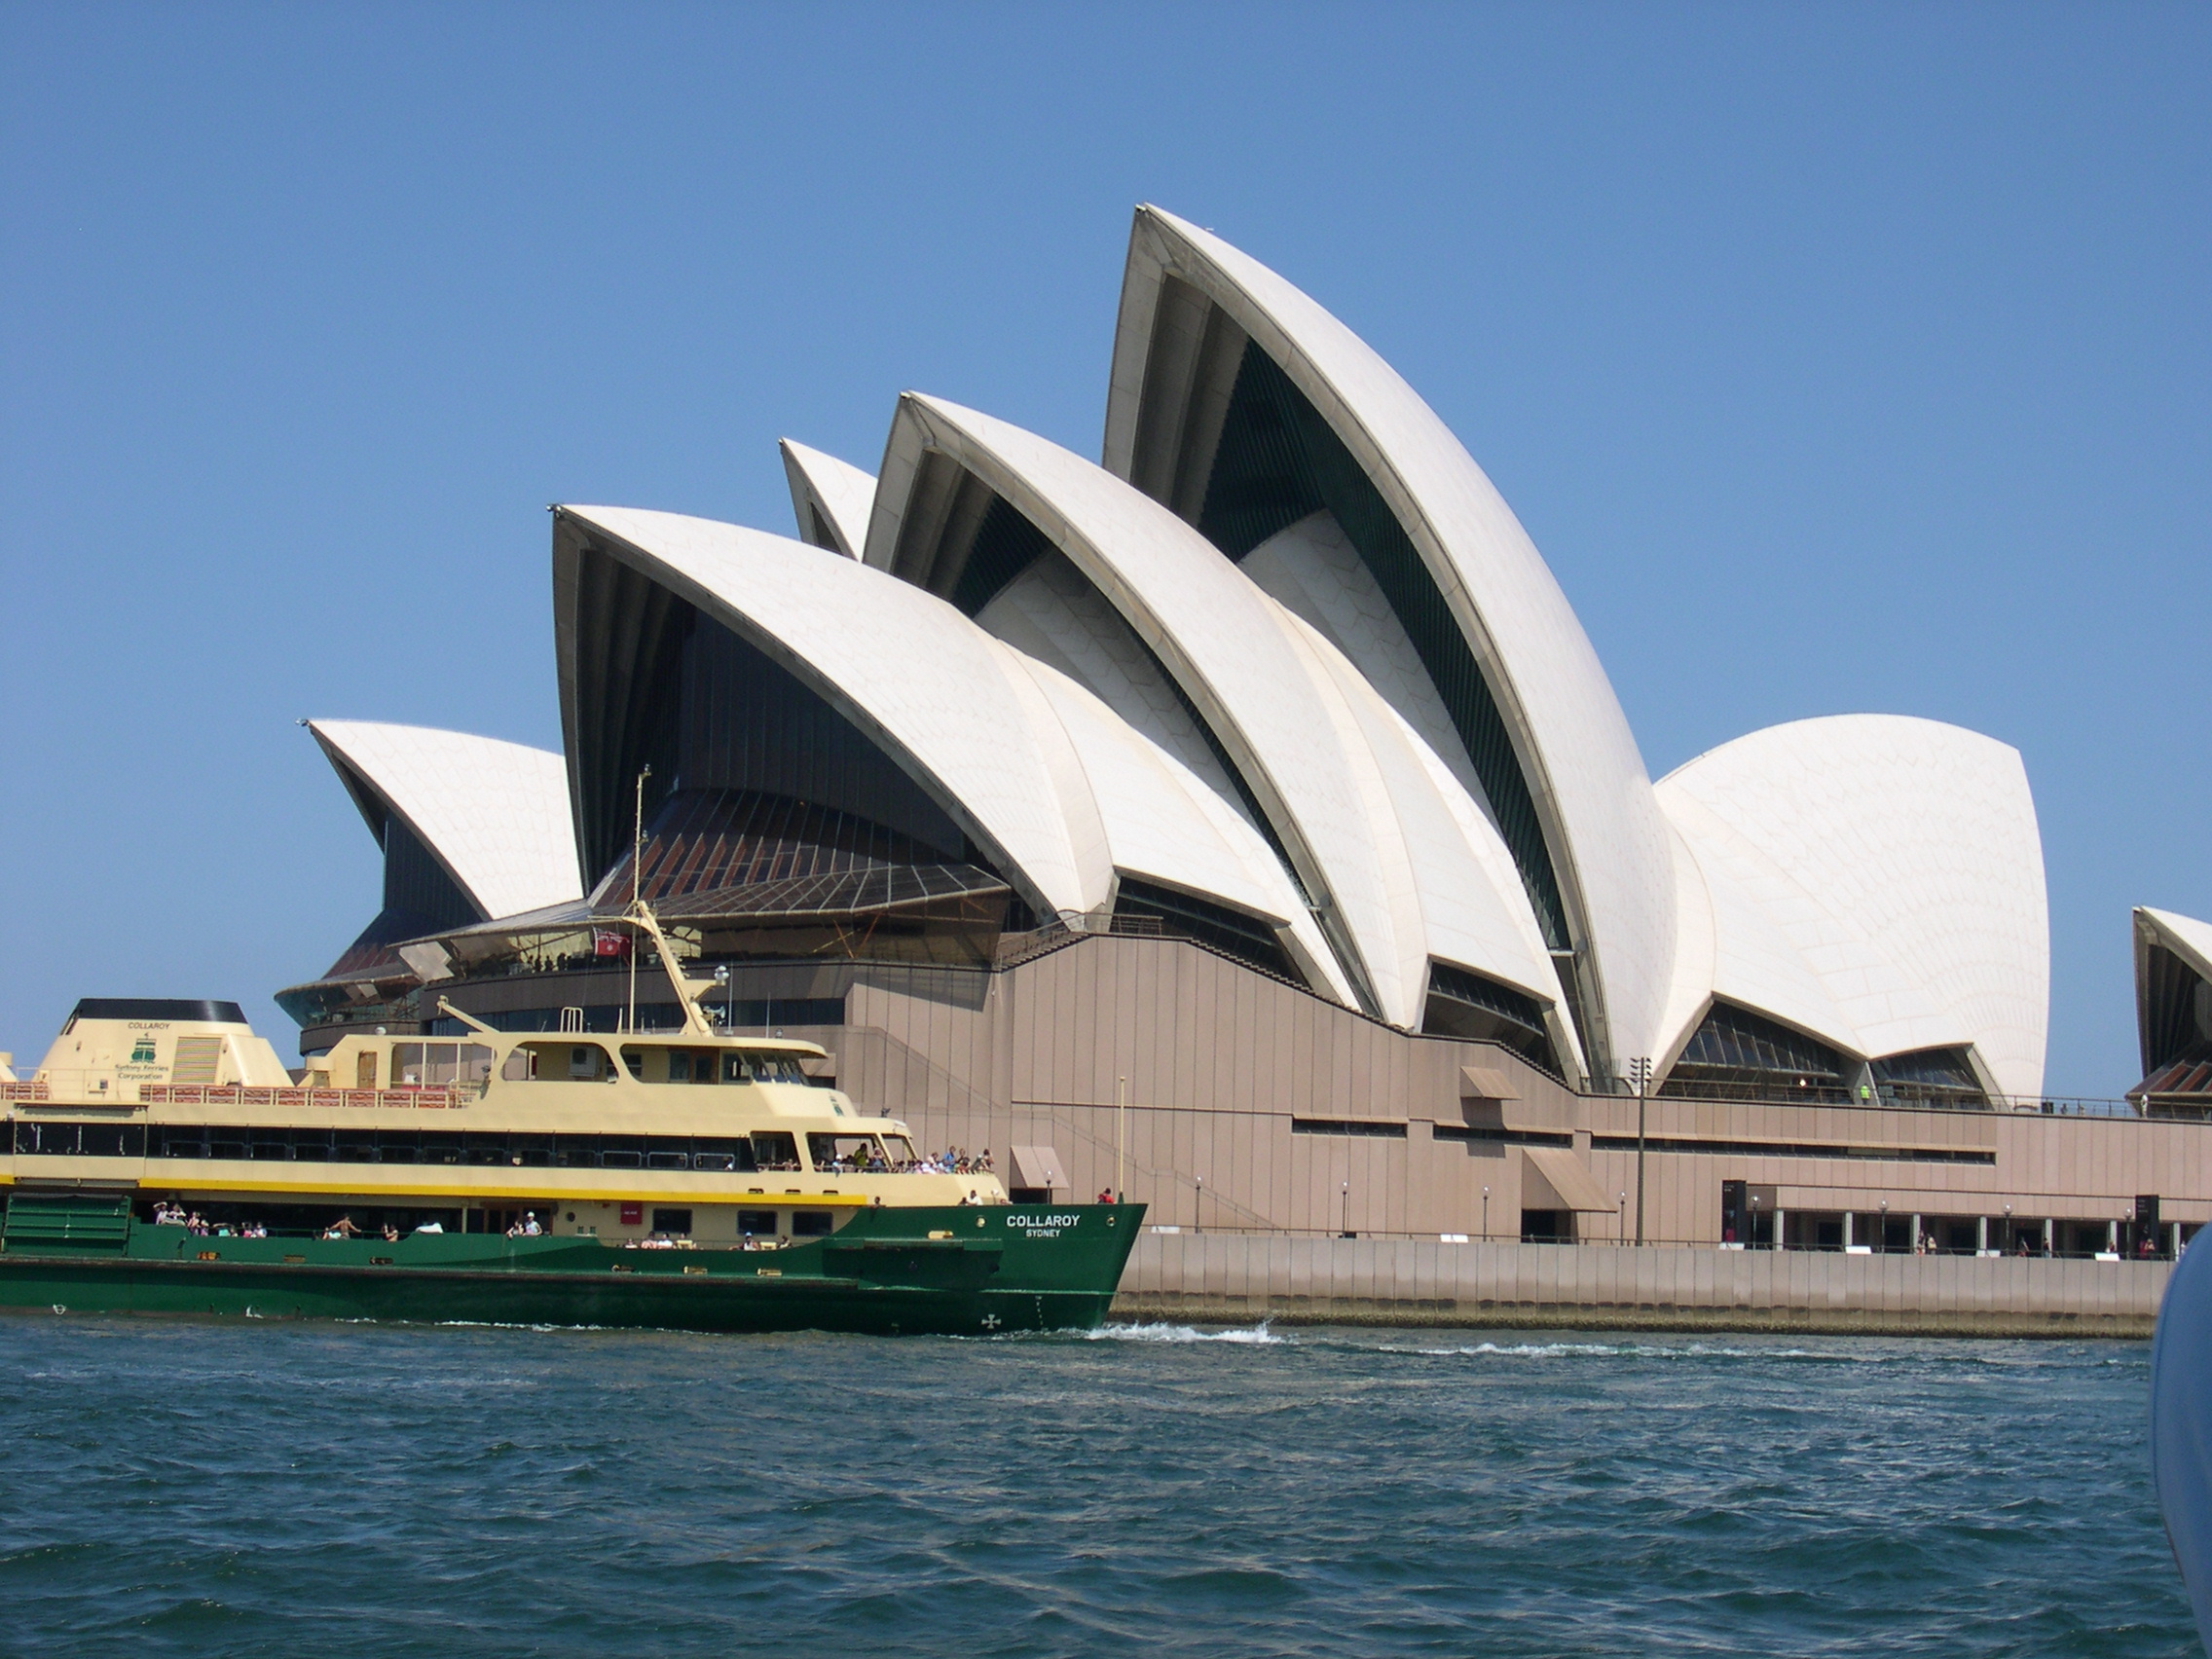 Free stock images of cities for Sydney opera housse